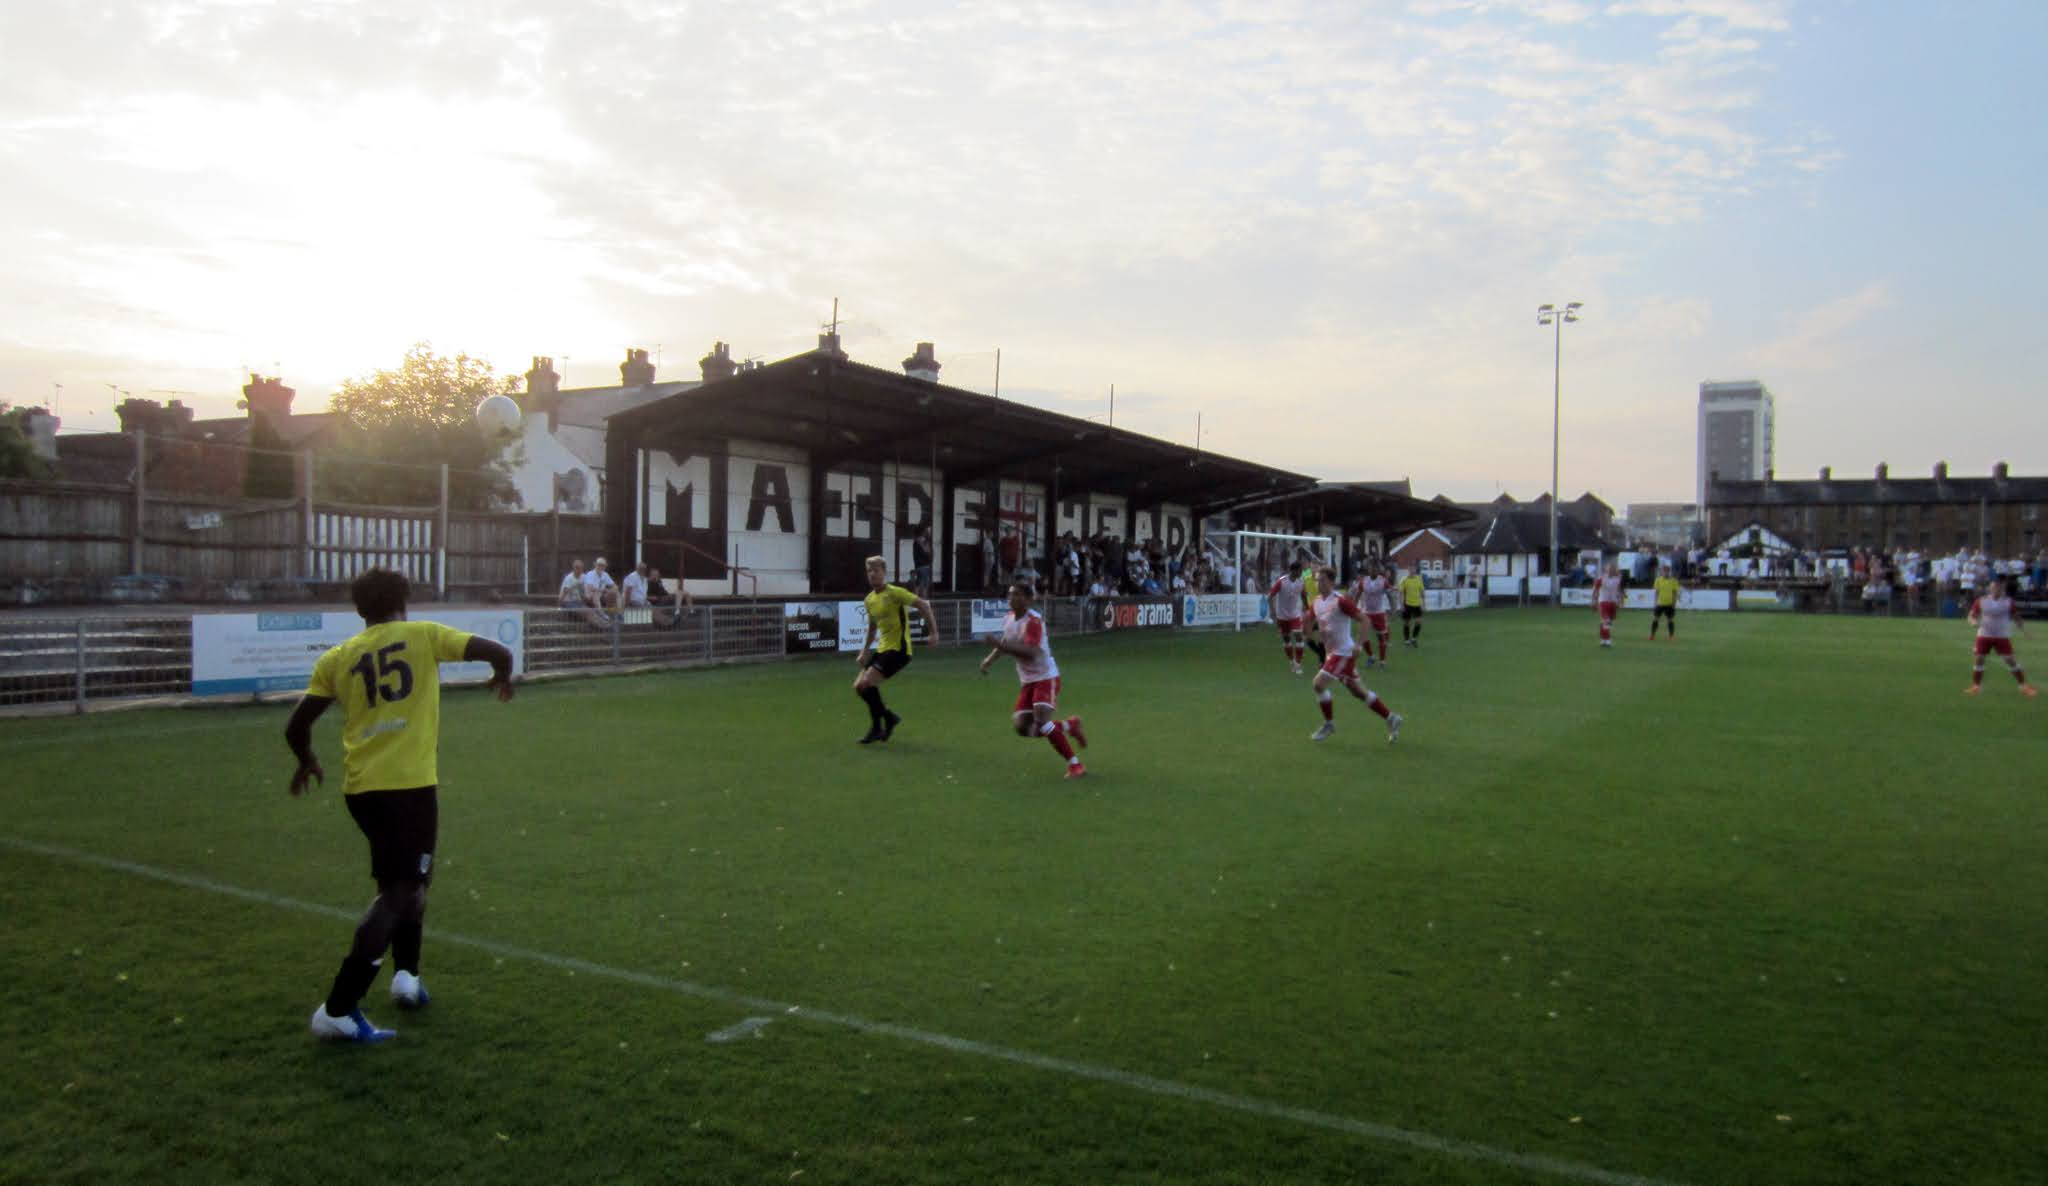 A throw in during a game between Maidenhead and Stevenage